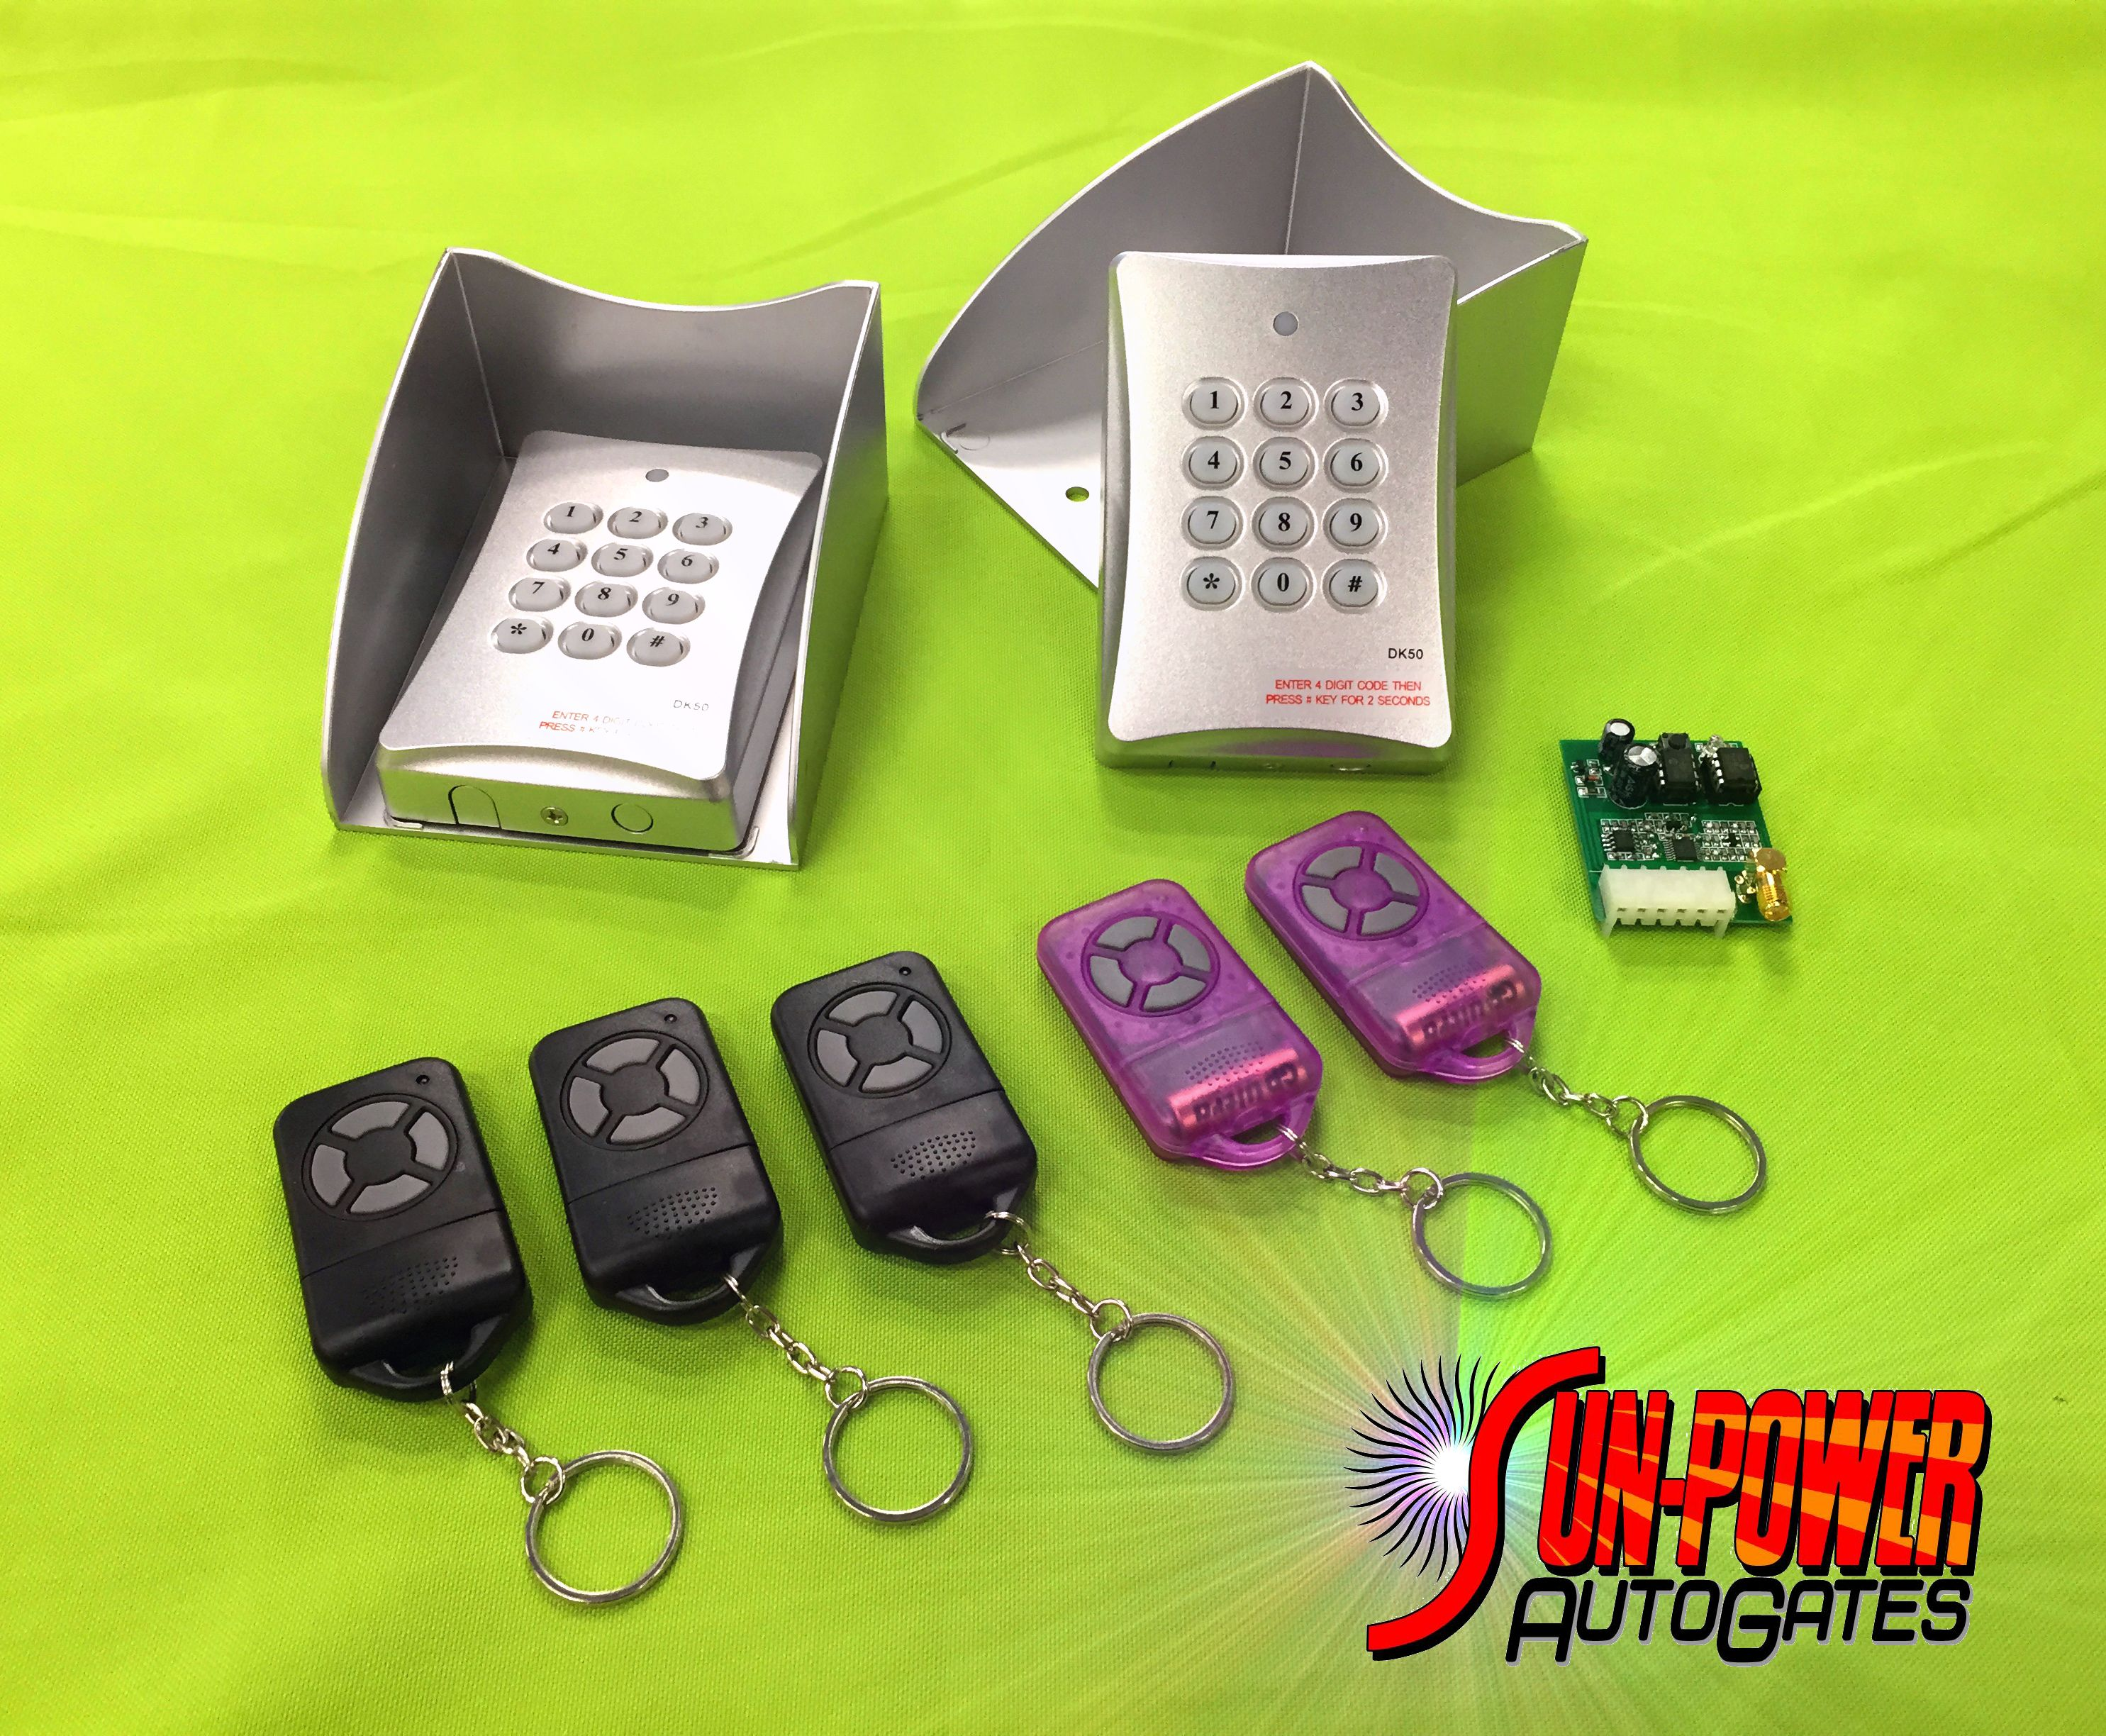 Keypads and remotes for the XP series Gate Operators from SUN-POWER Auto Gates